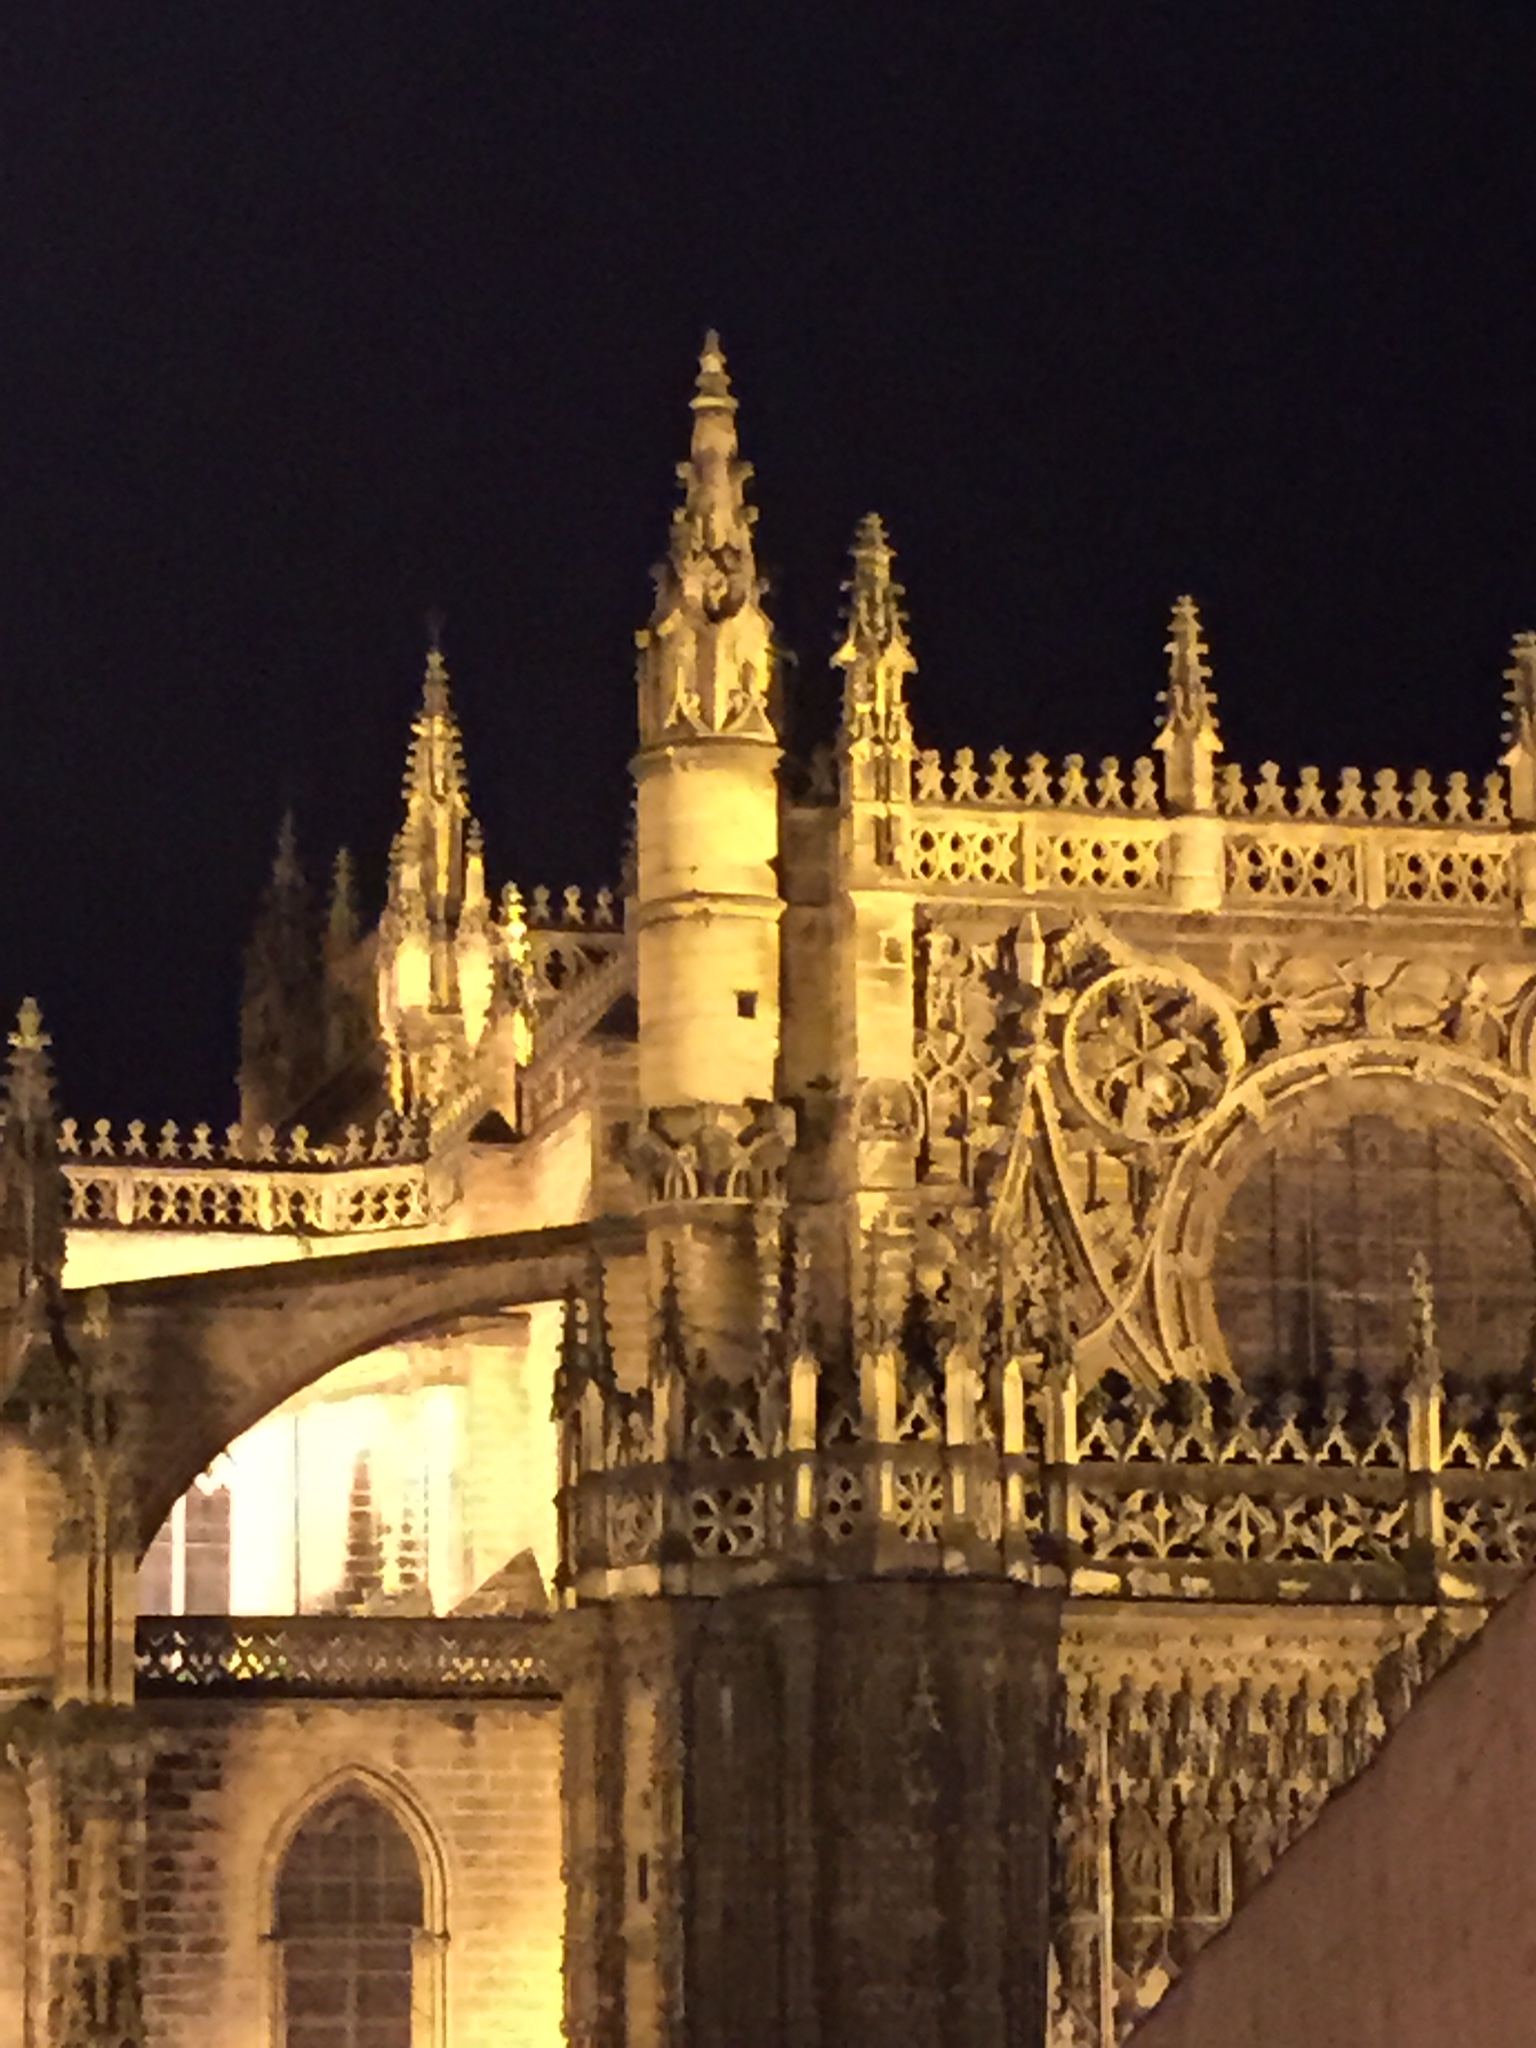 The view of La Catedral from our favorite terraza.